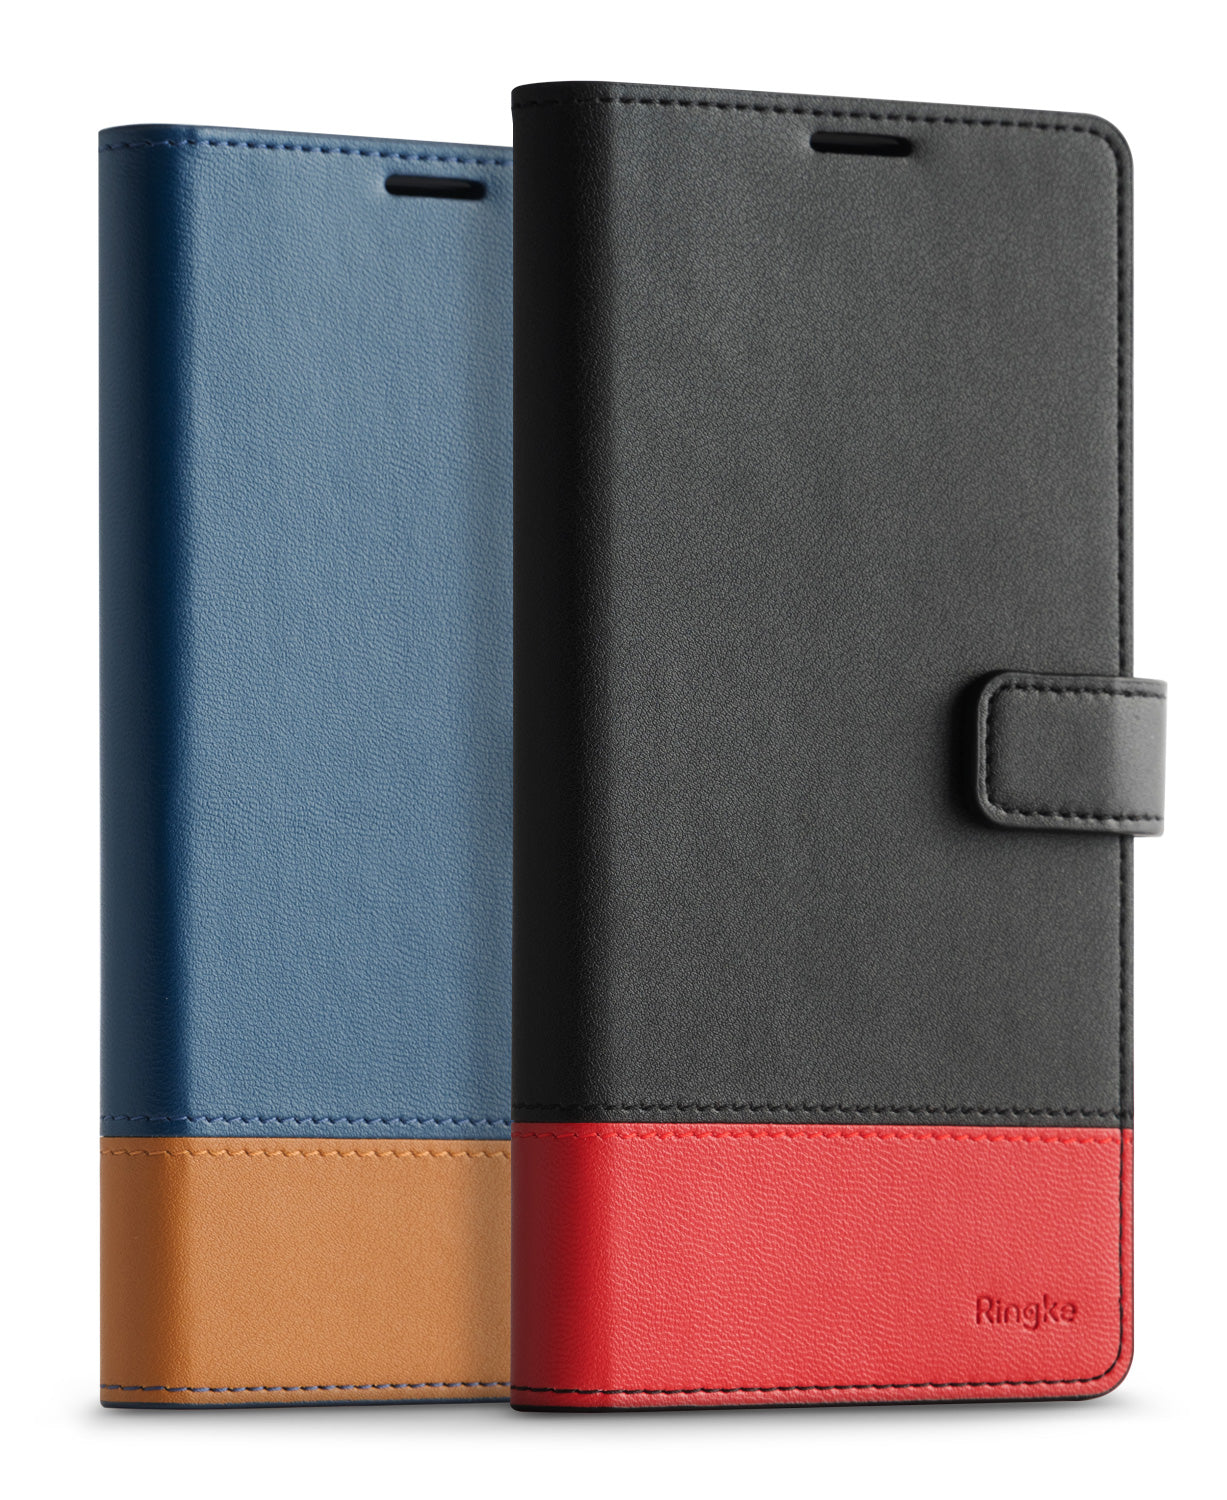 ringke wallet designed for samsung galaxy s10e